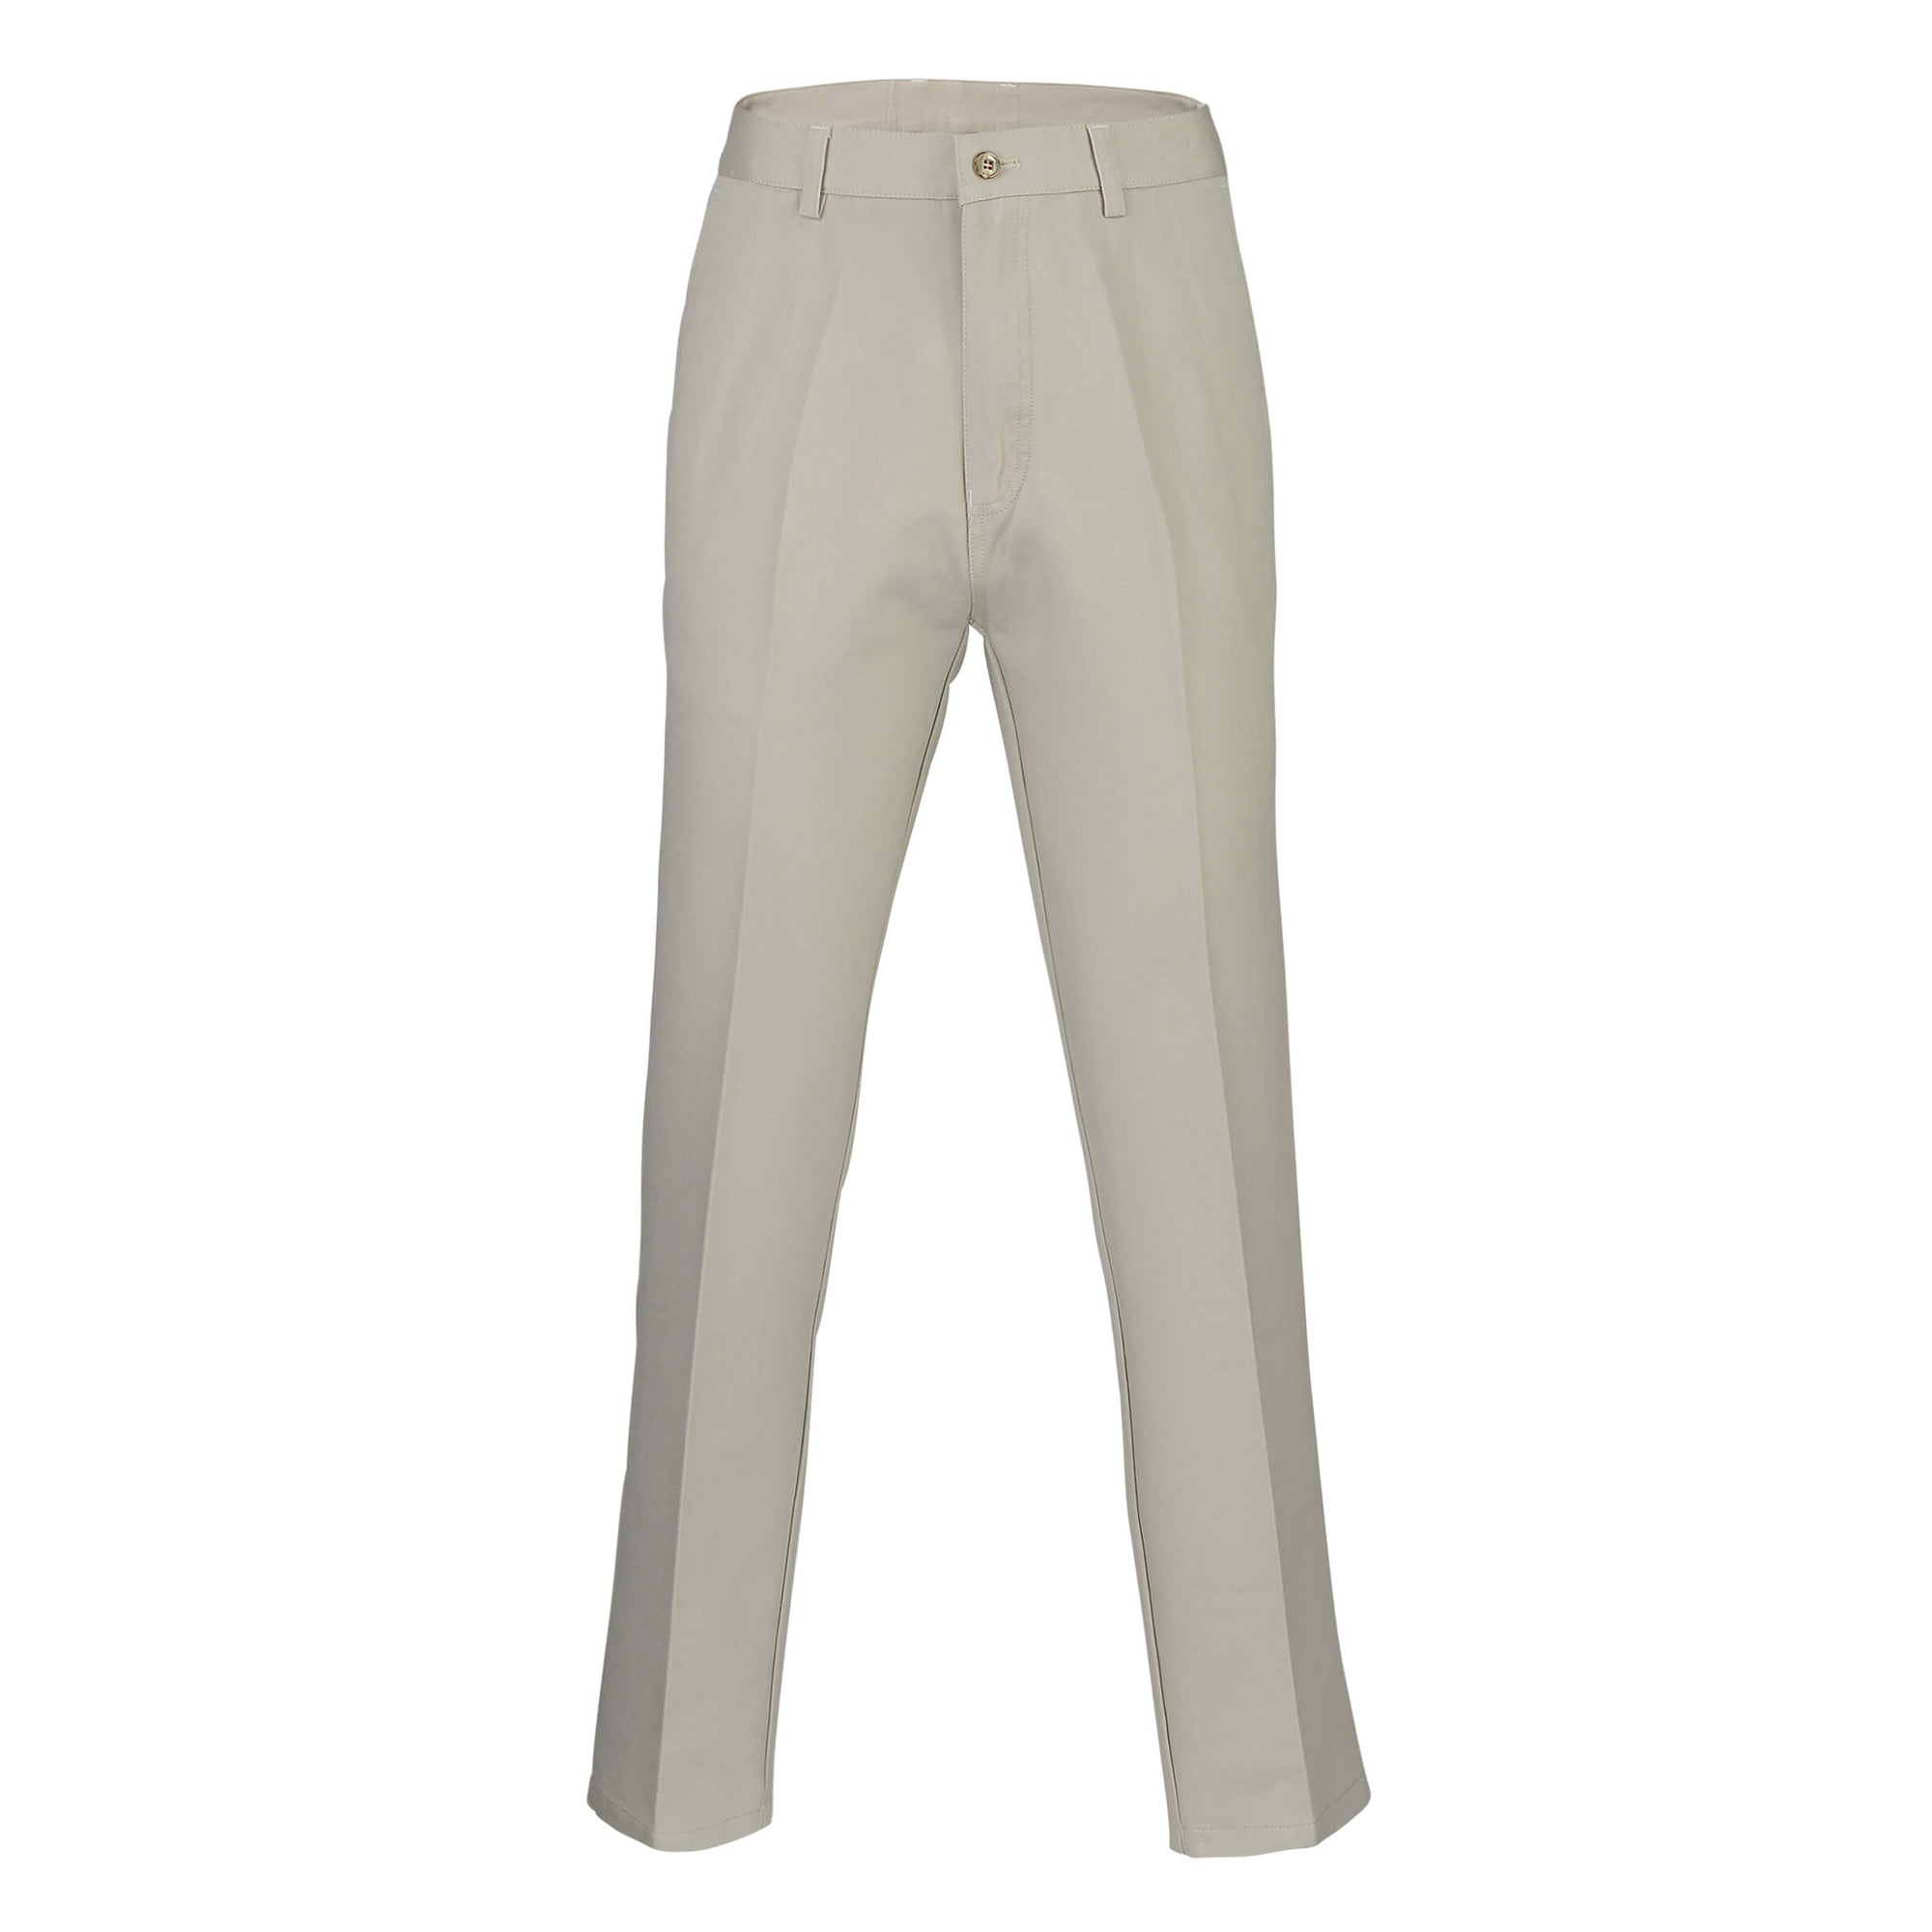 Mens Khaki Pants - Light Stone